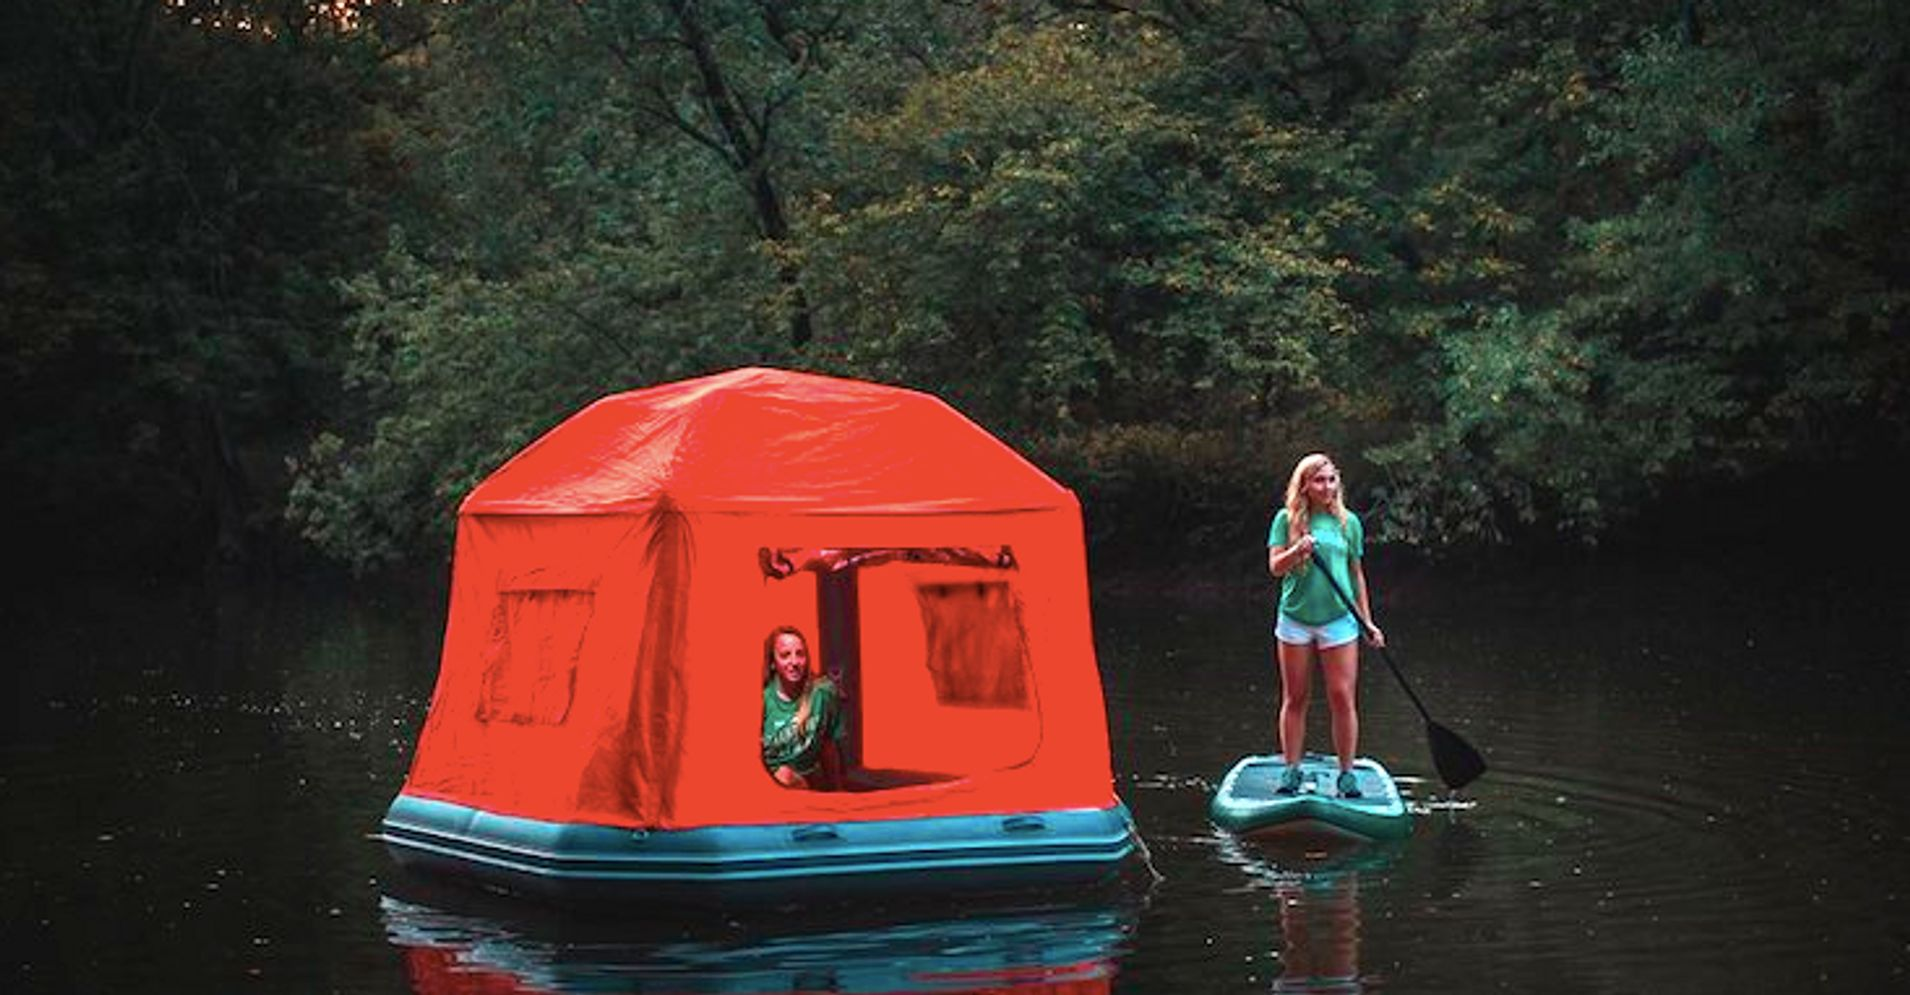 This Magical Floating Tent Will Make The World Your